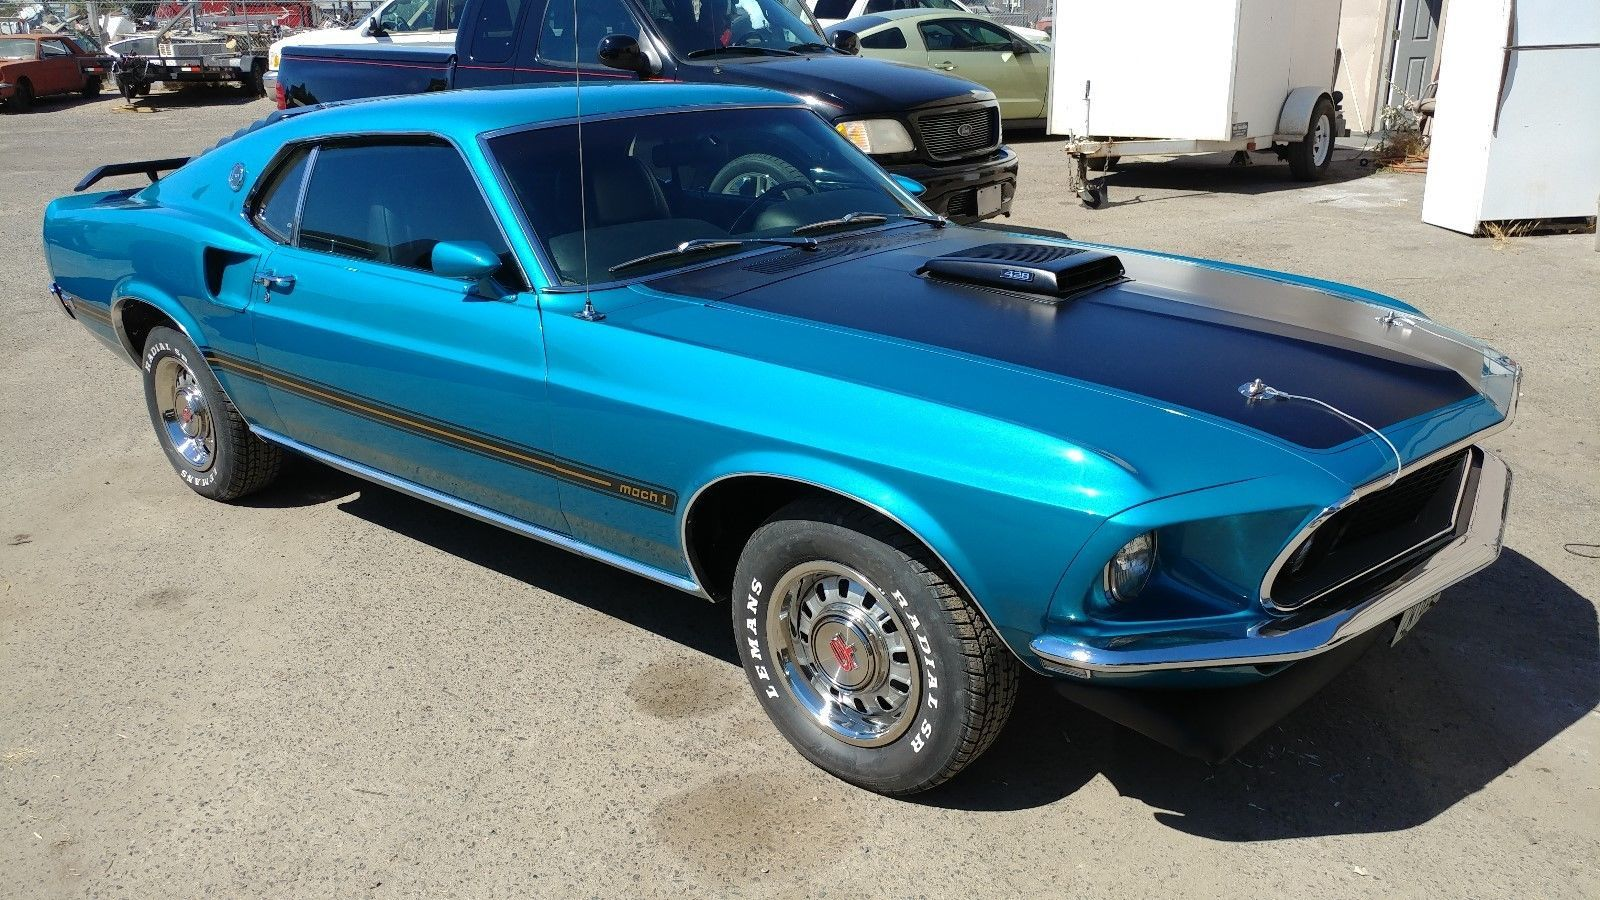 ebay 1969 ford mustang mach 1 428 cobra jet gulfstream aqua 428ebay 1969 ford mustang mach 1 428 cobra jet gulfstream aqua 428 cobra jet, shaker hood, r code and factory air, fordmustang ford